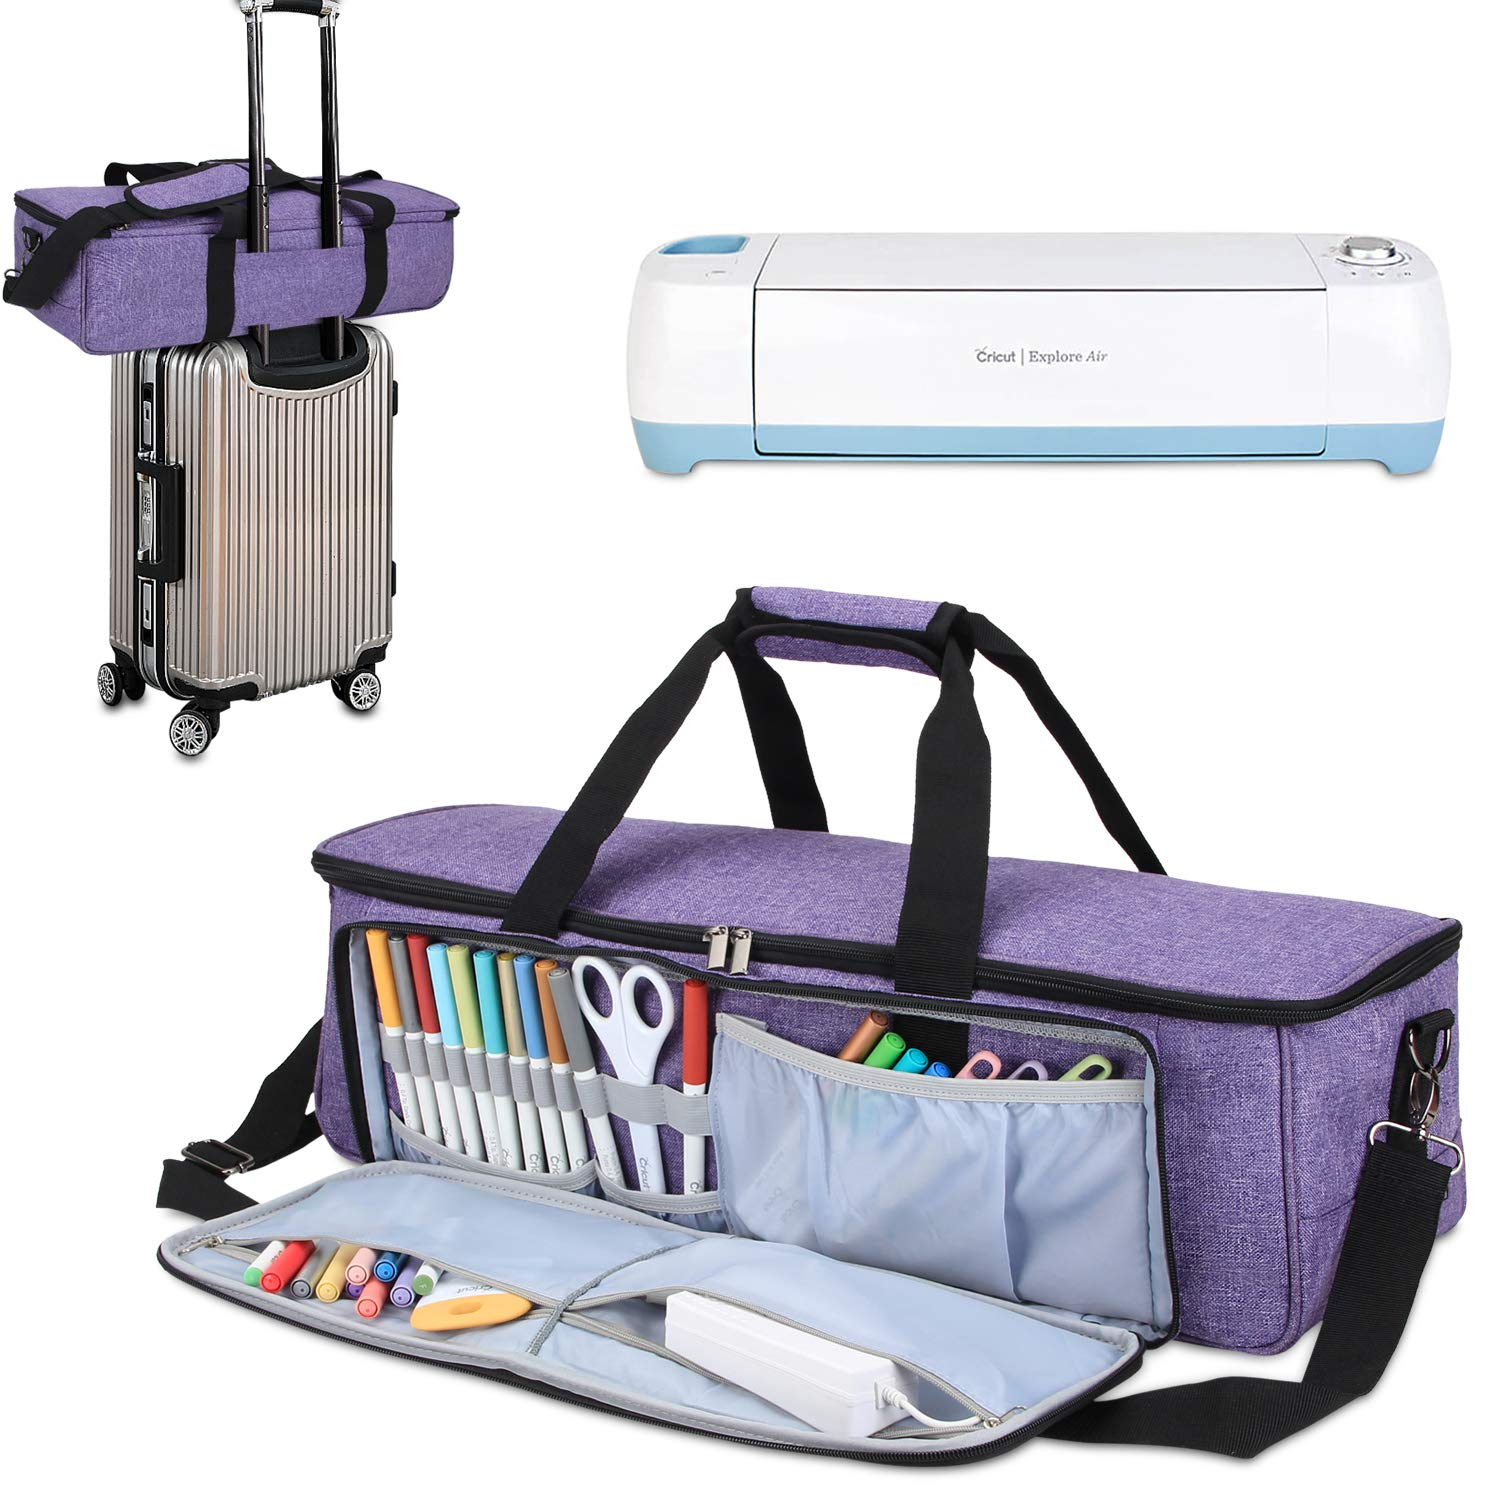 Luxja Double-layer Carrying Bag for Brother ScanNCut Bag Only Cricut Explore Air Travel Bag for Cricut Maker Grey and Cameo 3 Fits for Brother ScanNCut CM300, CM600, CM700, CM900 Air2